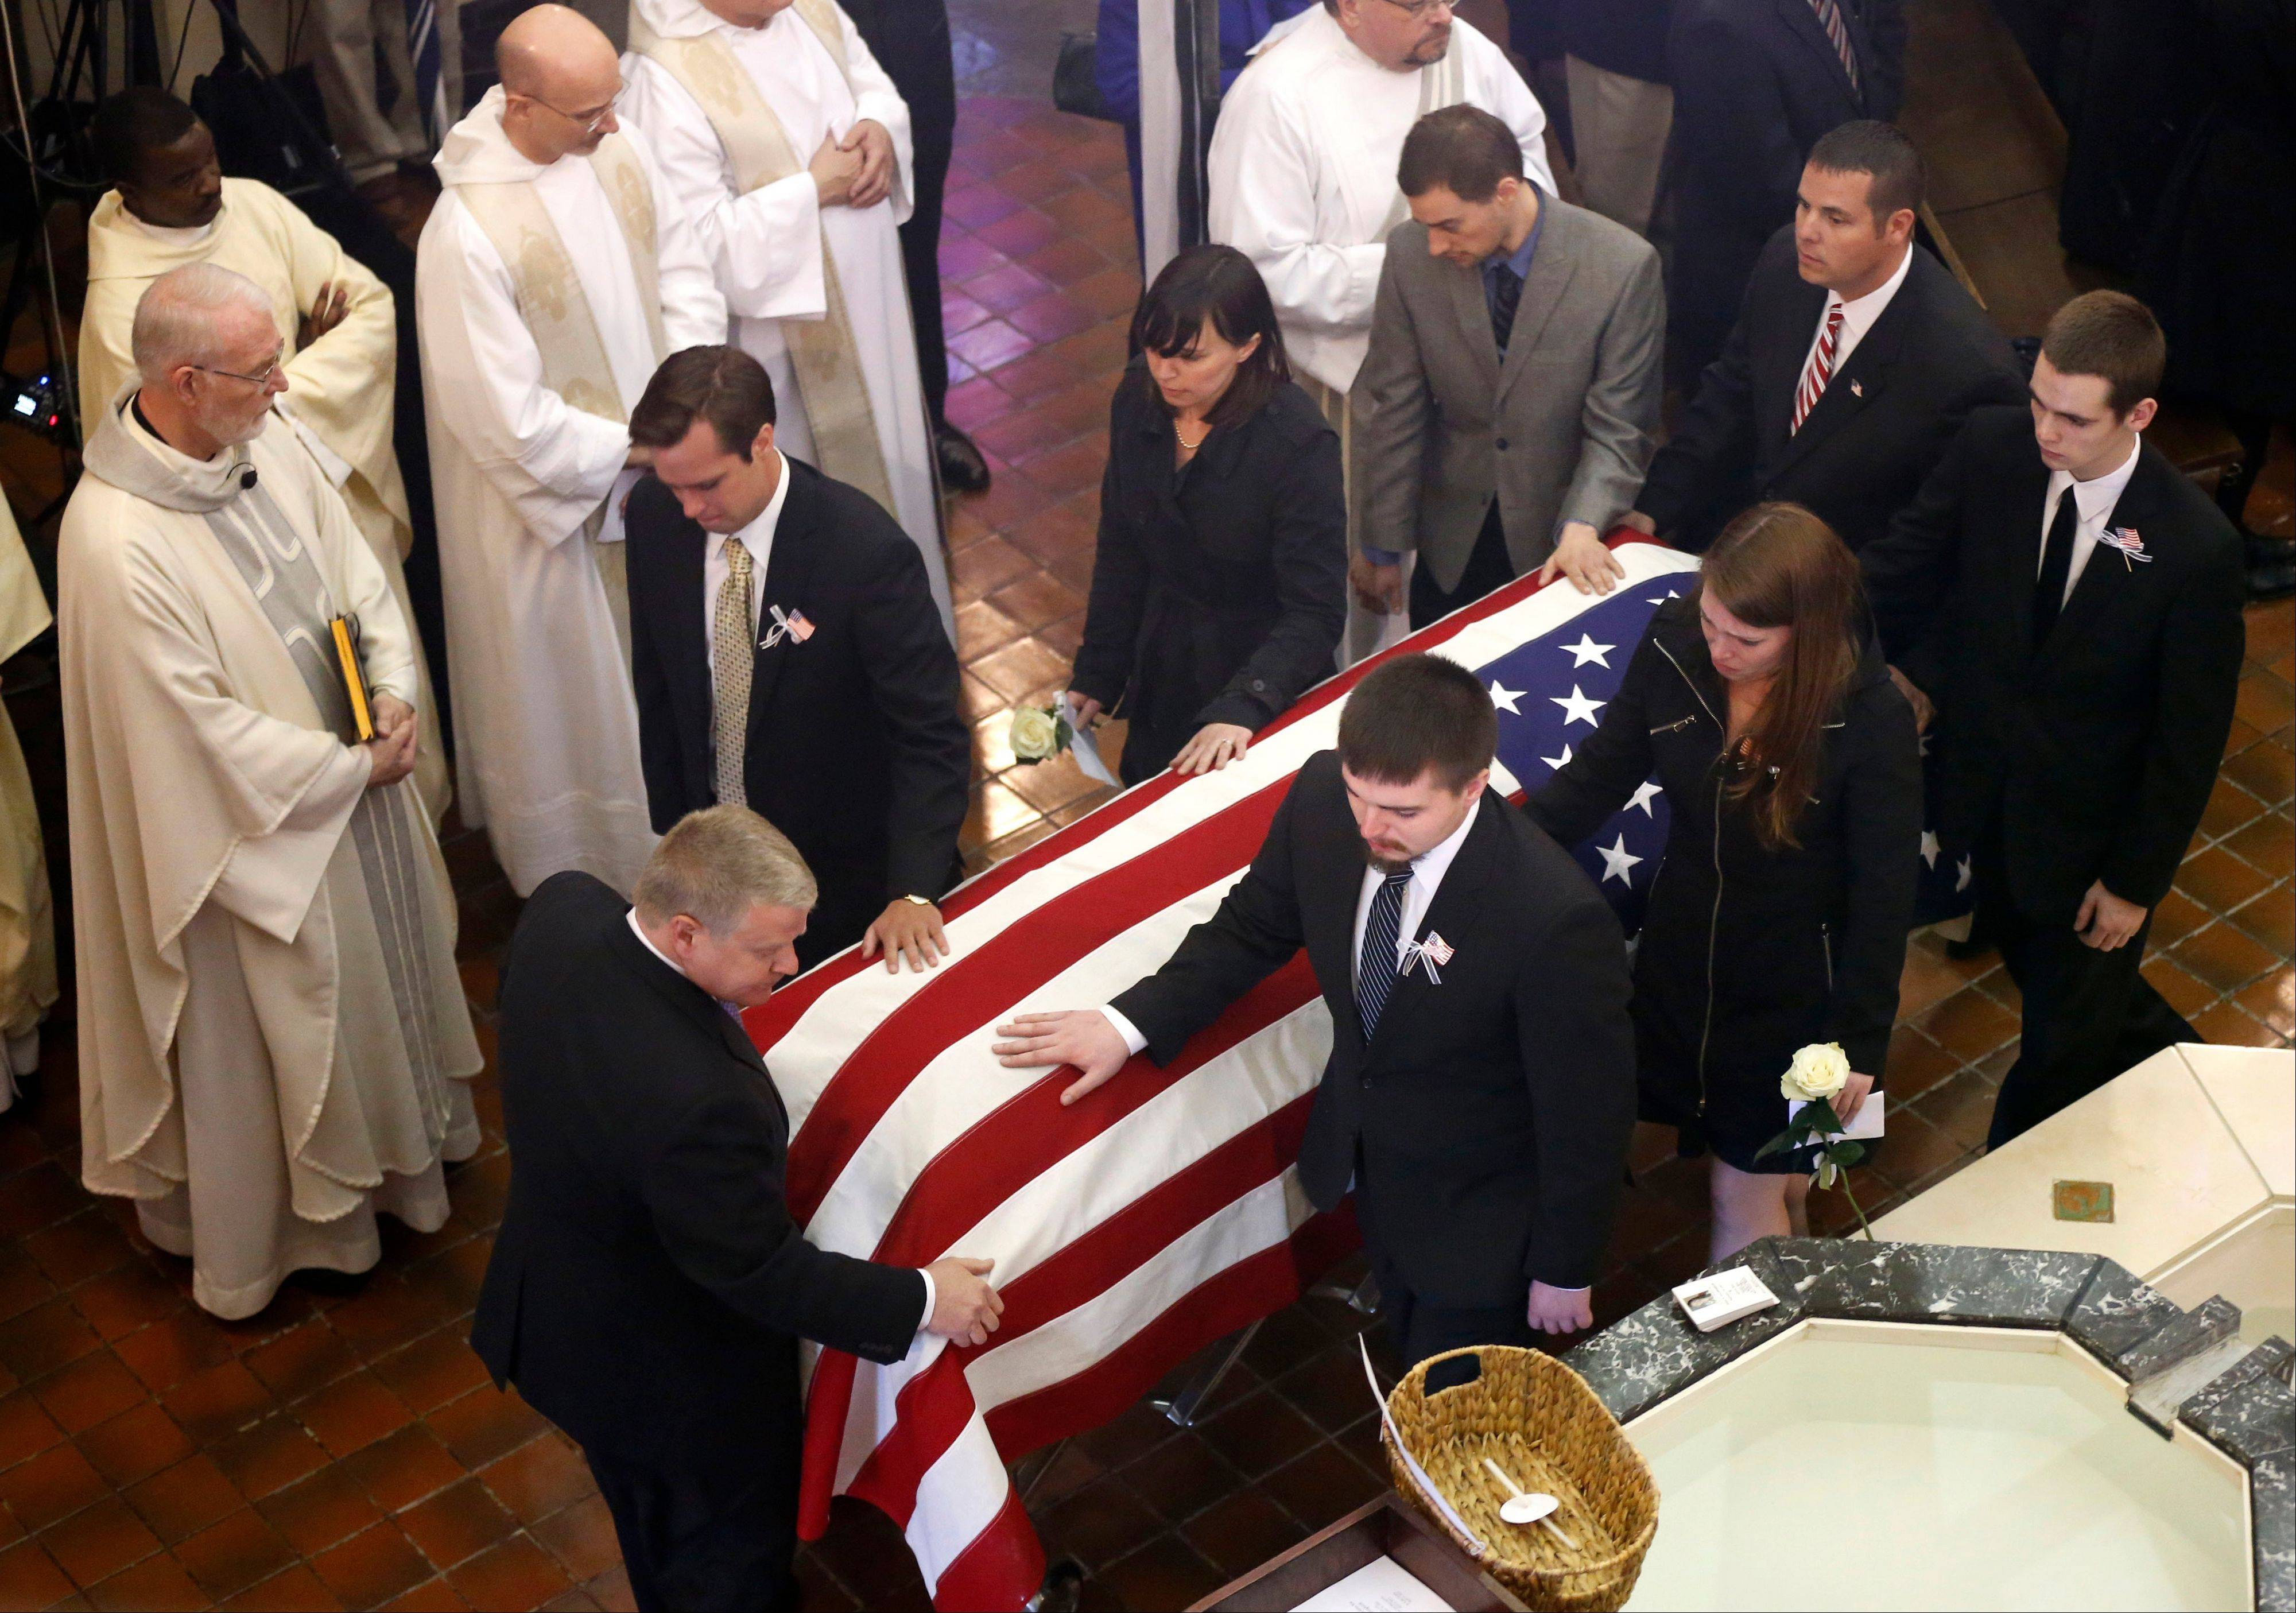 Pallbearers escort the casket of U.S. diplomat Anne Smedinghoff out of St. Luke Catholic Church in River Forest on Wednesday.